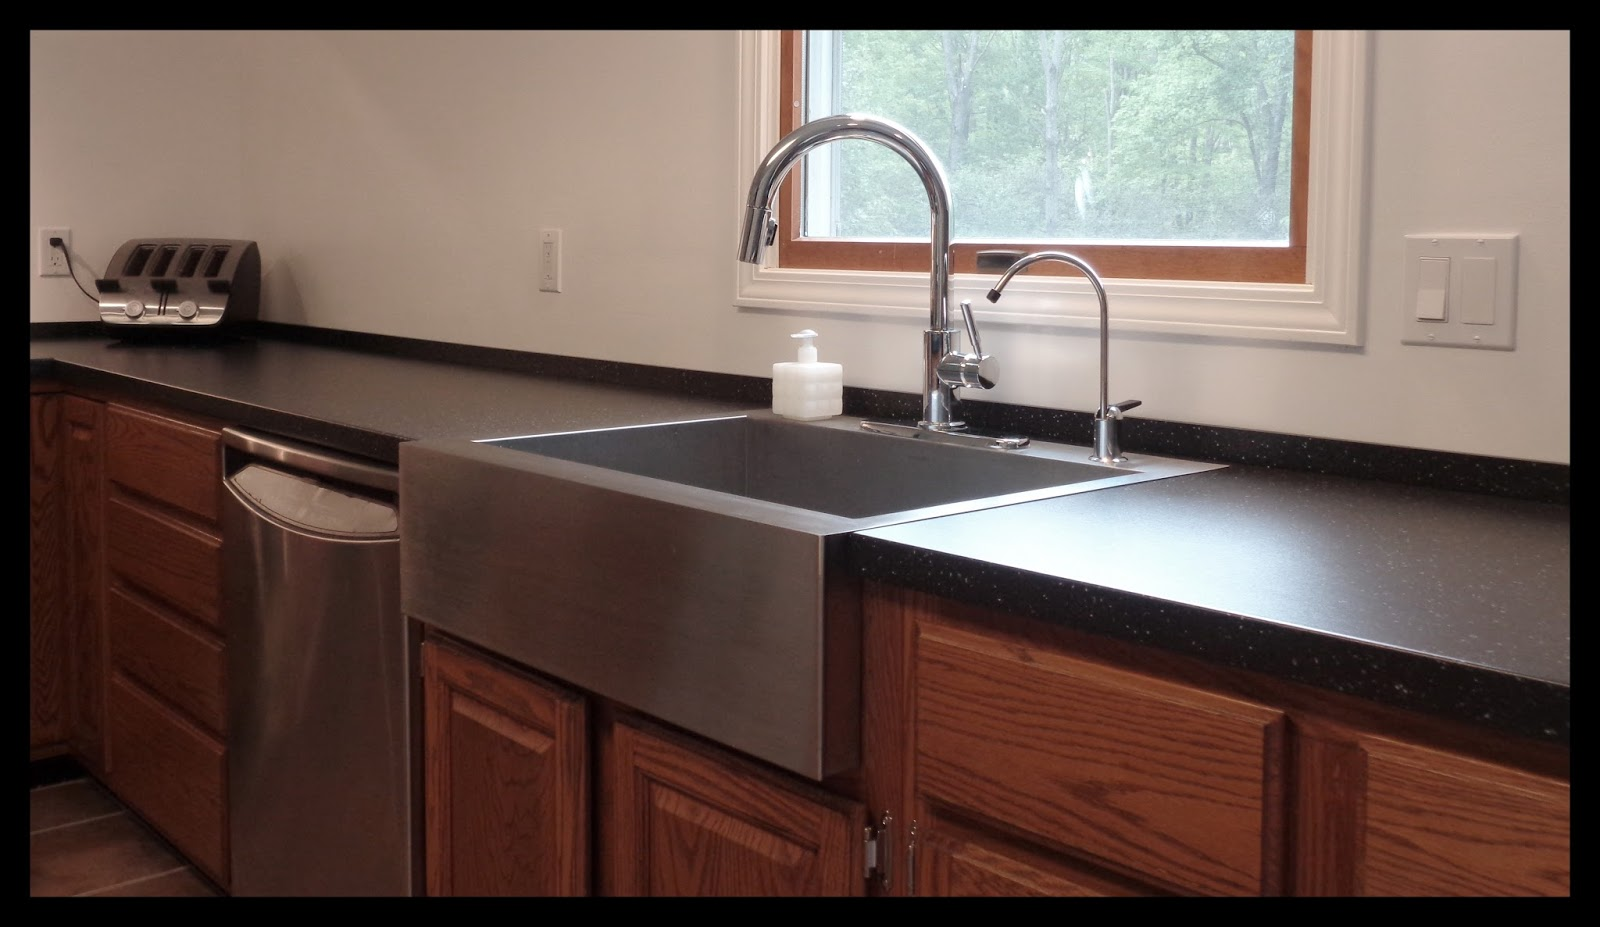 ikea kitchen counters pulls and handles for cabinets manic maker countertop backsplash hack